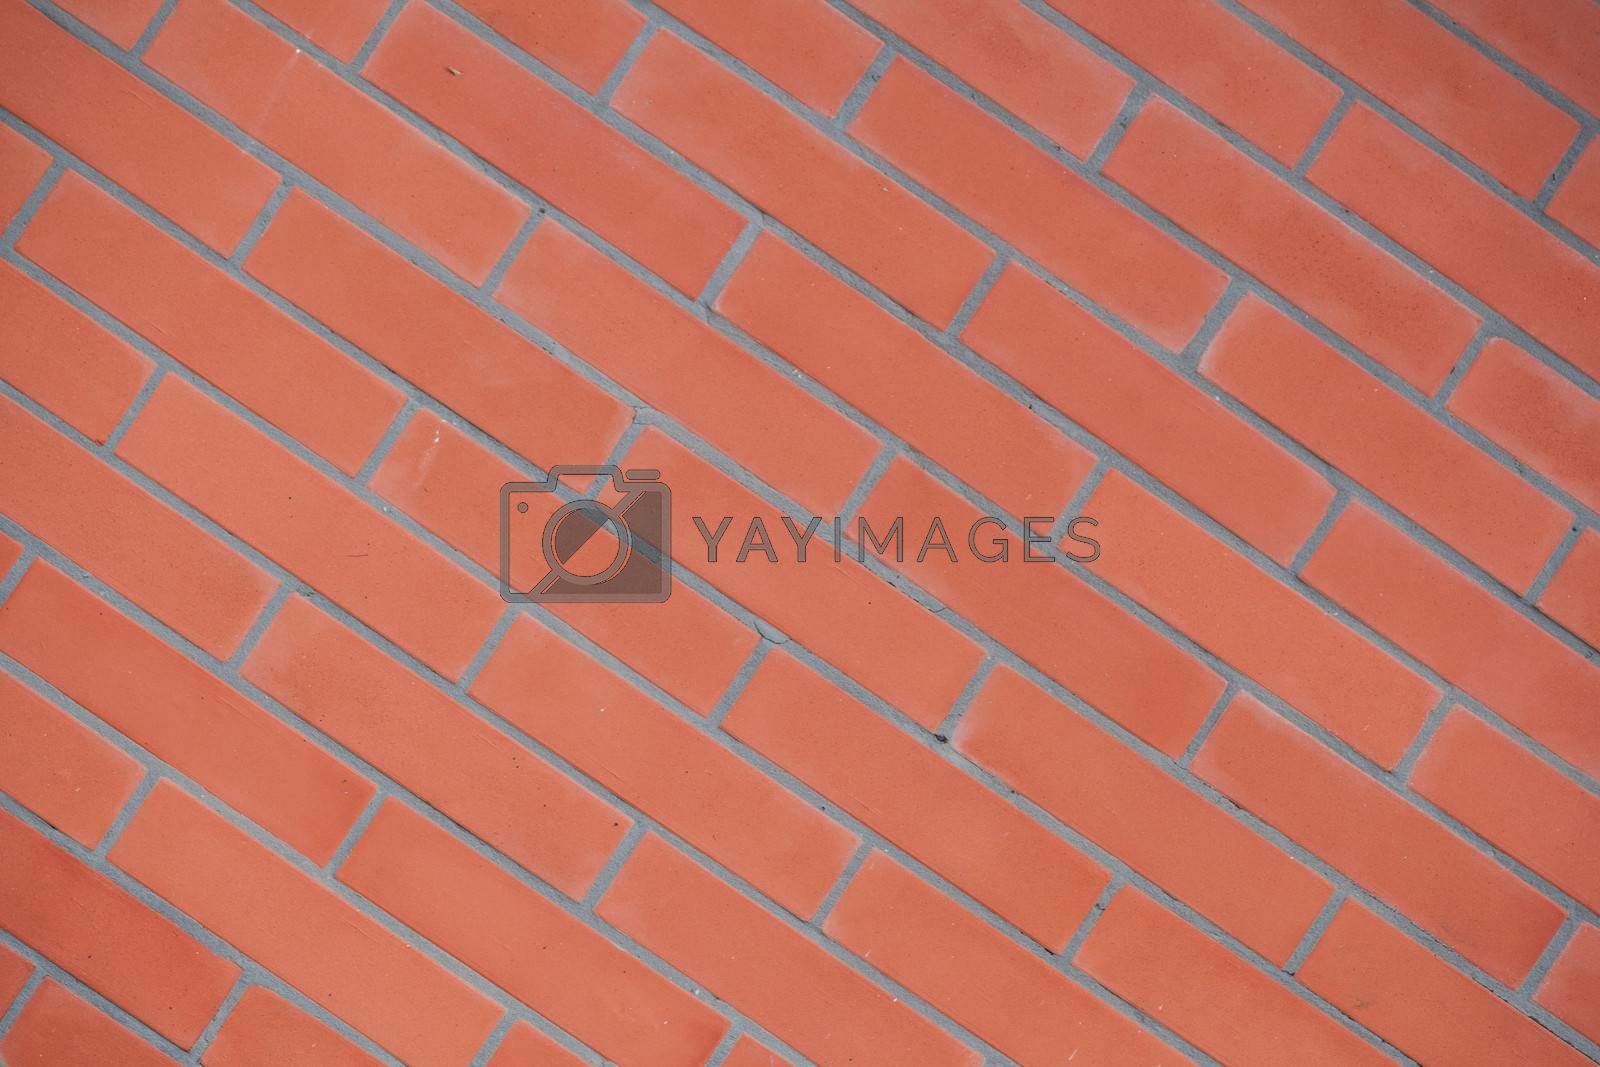 A close-up image of a brick wall texture background. Check out other textures in my portfolio.